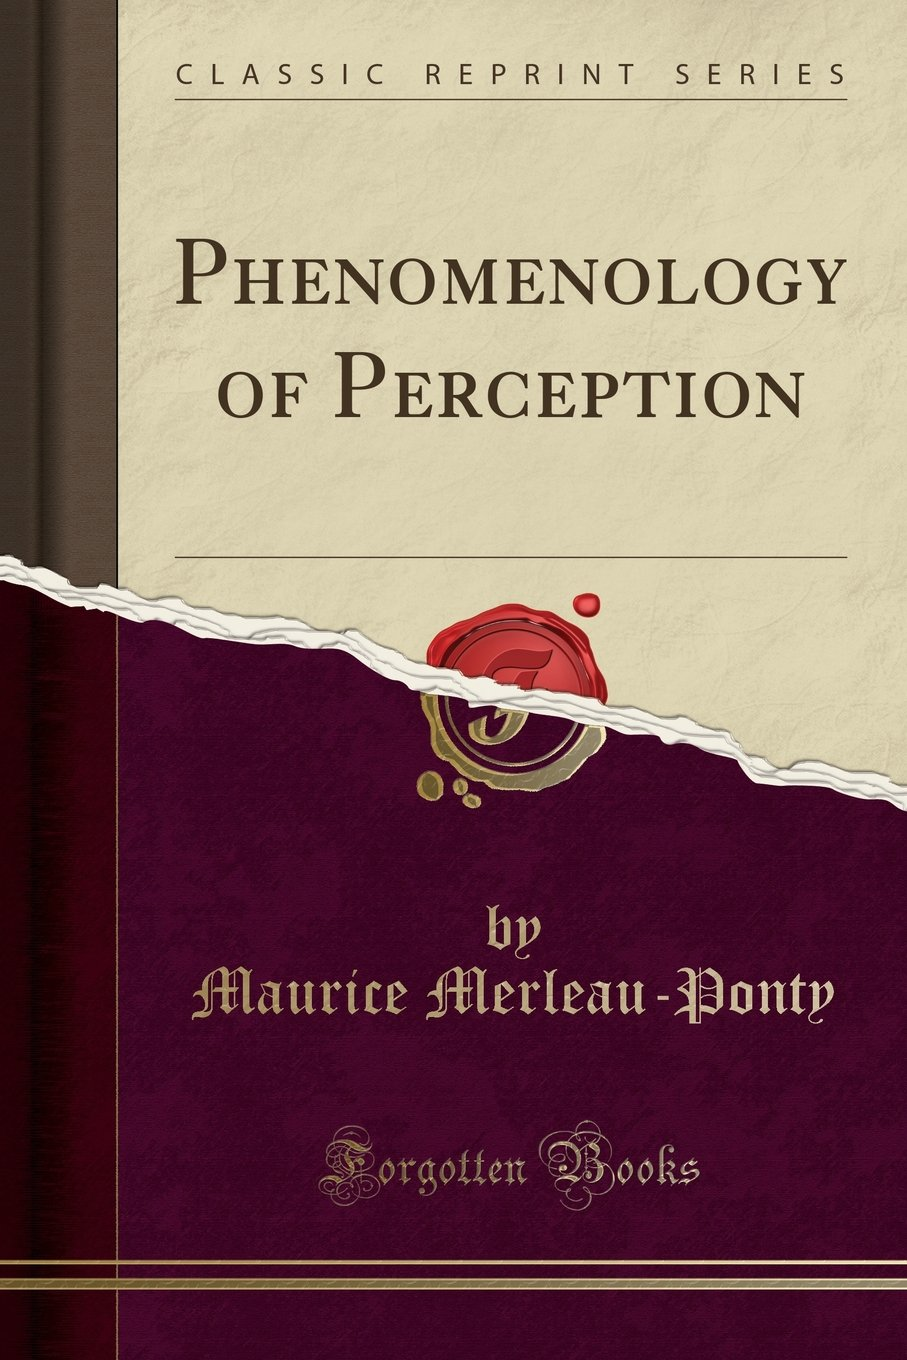 Phenomenology of Perception (Classic Reprint): Amazon.co.uk: Maurice Merleau -Ponty: 9781330985366: Books